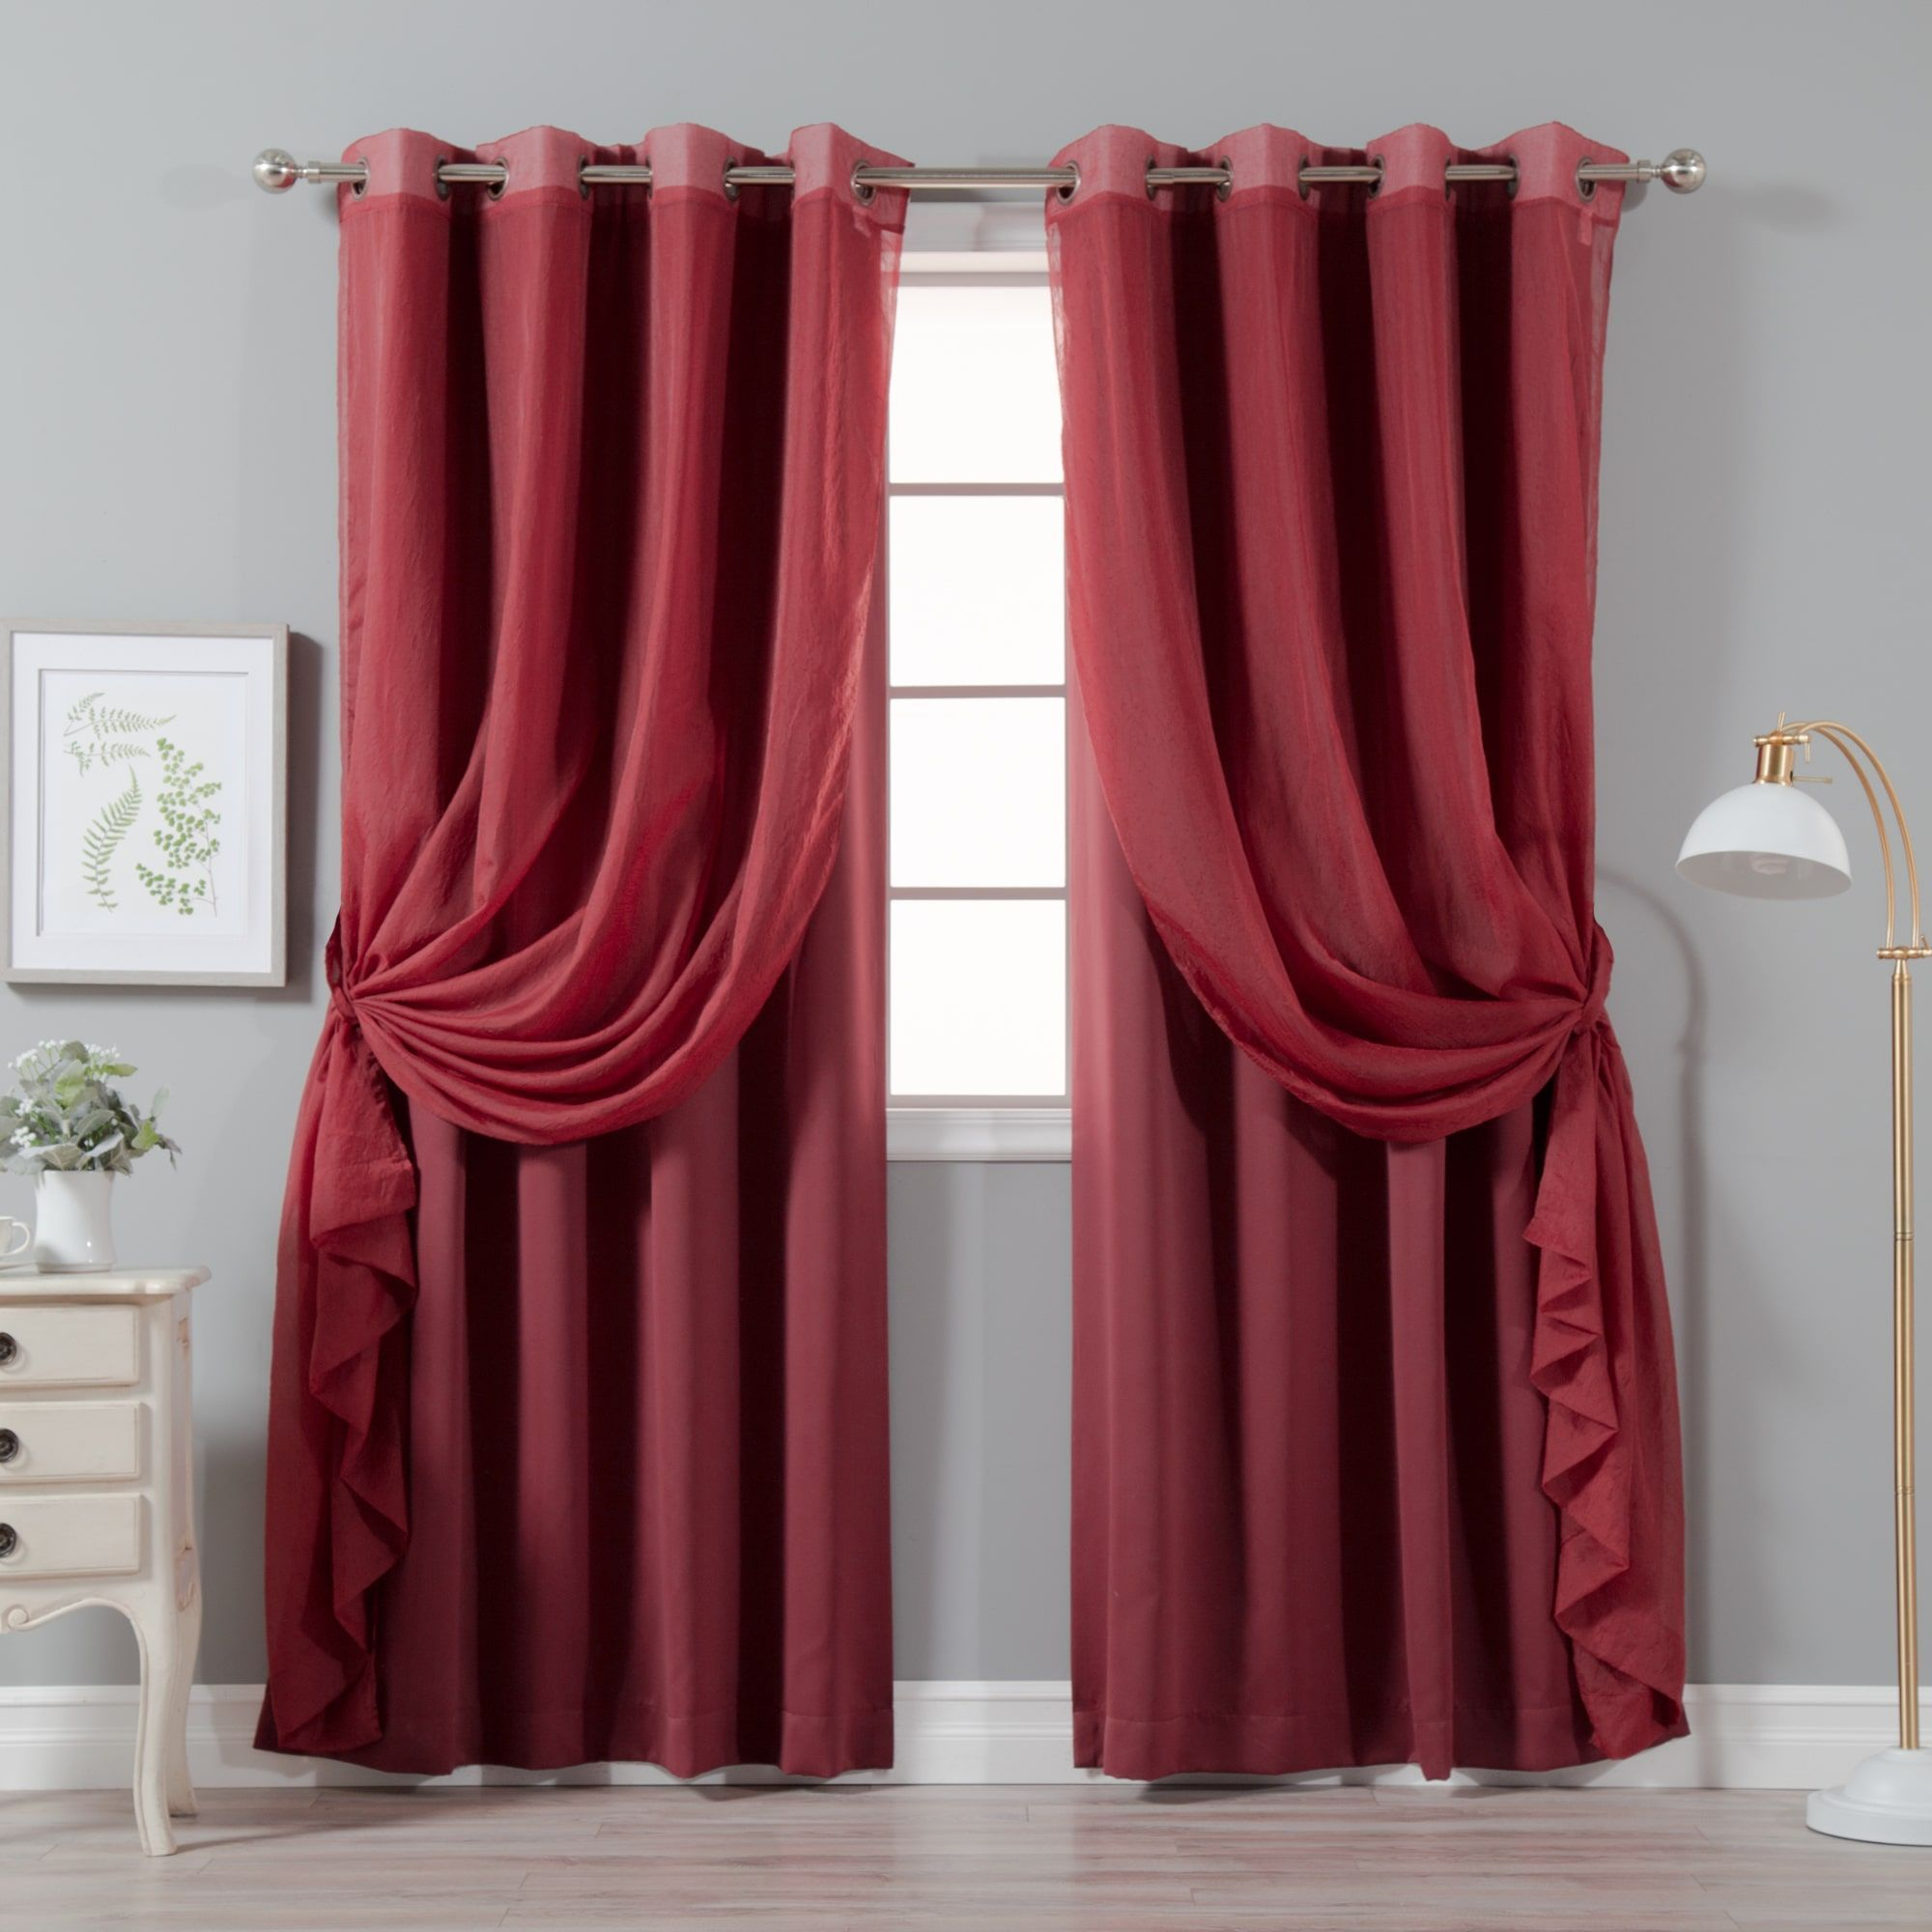 Aurora home mix and match crushed voile u solid blackout curtain